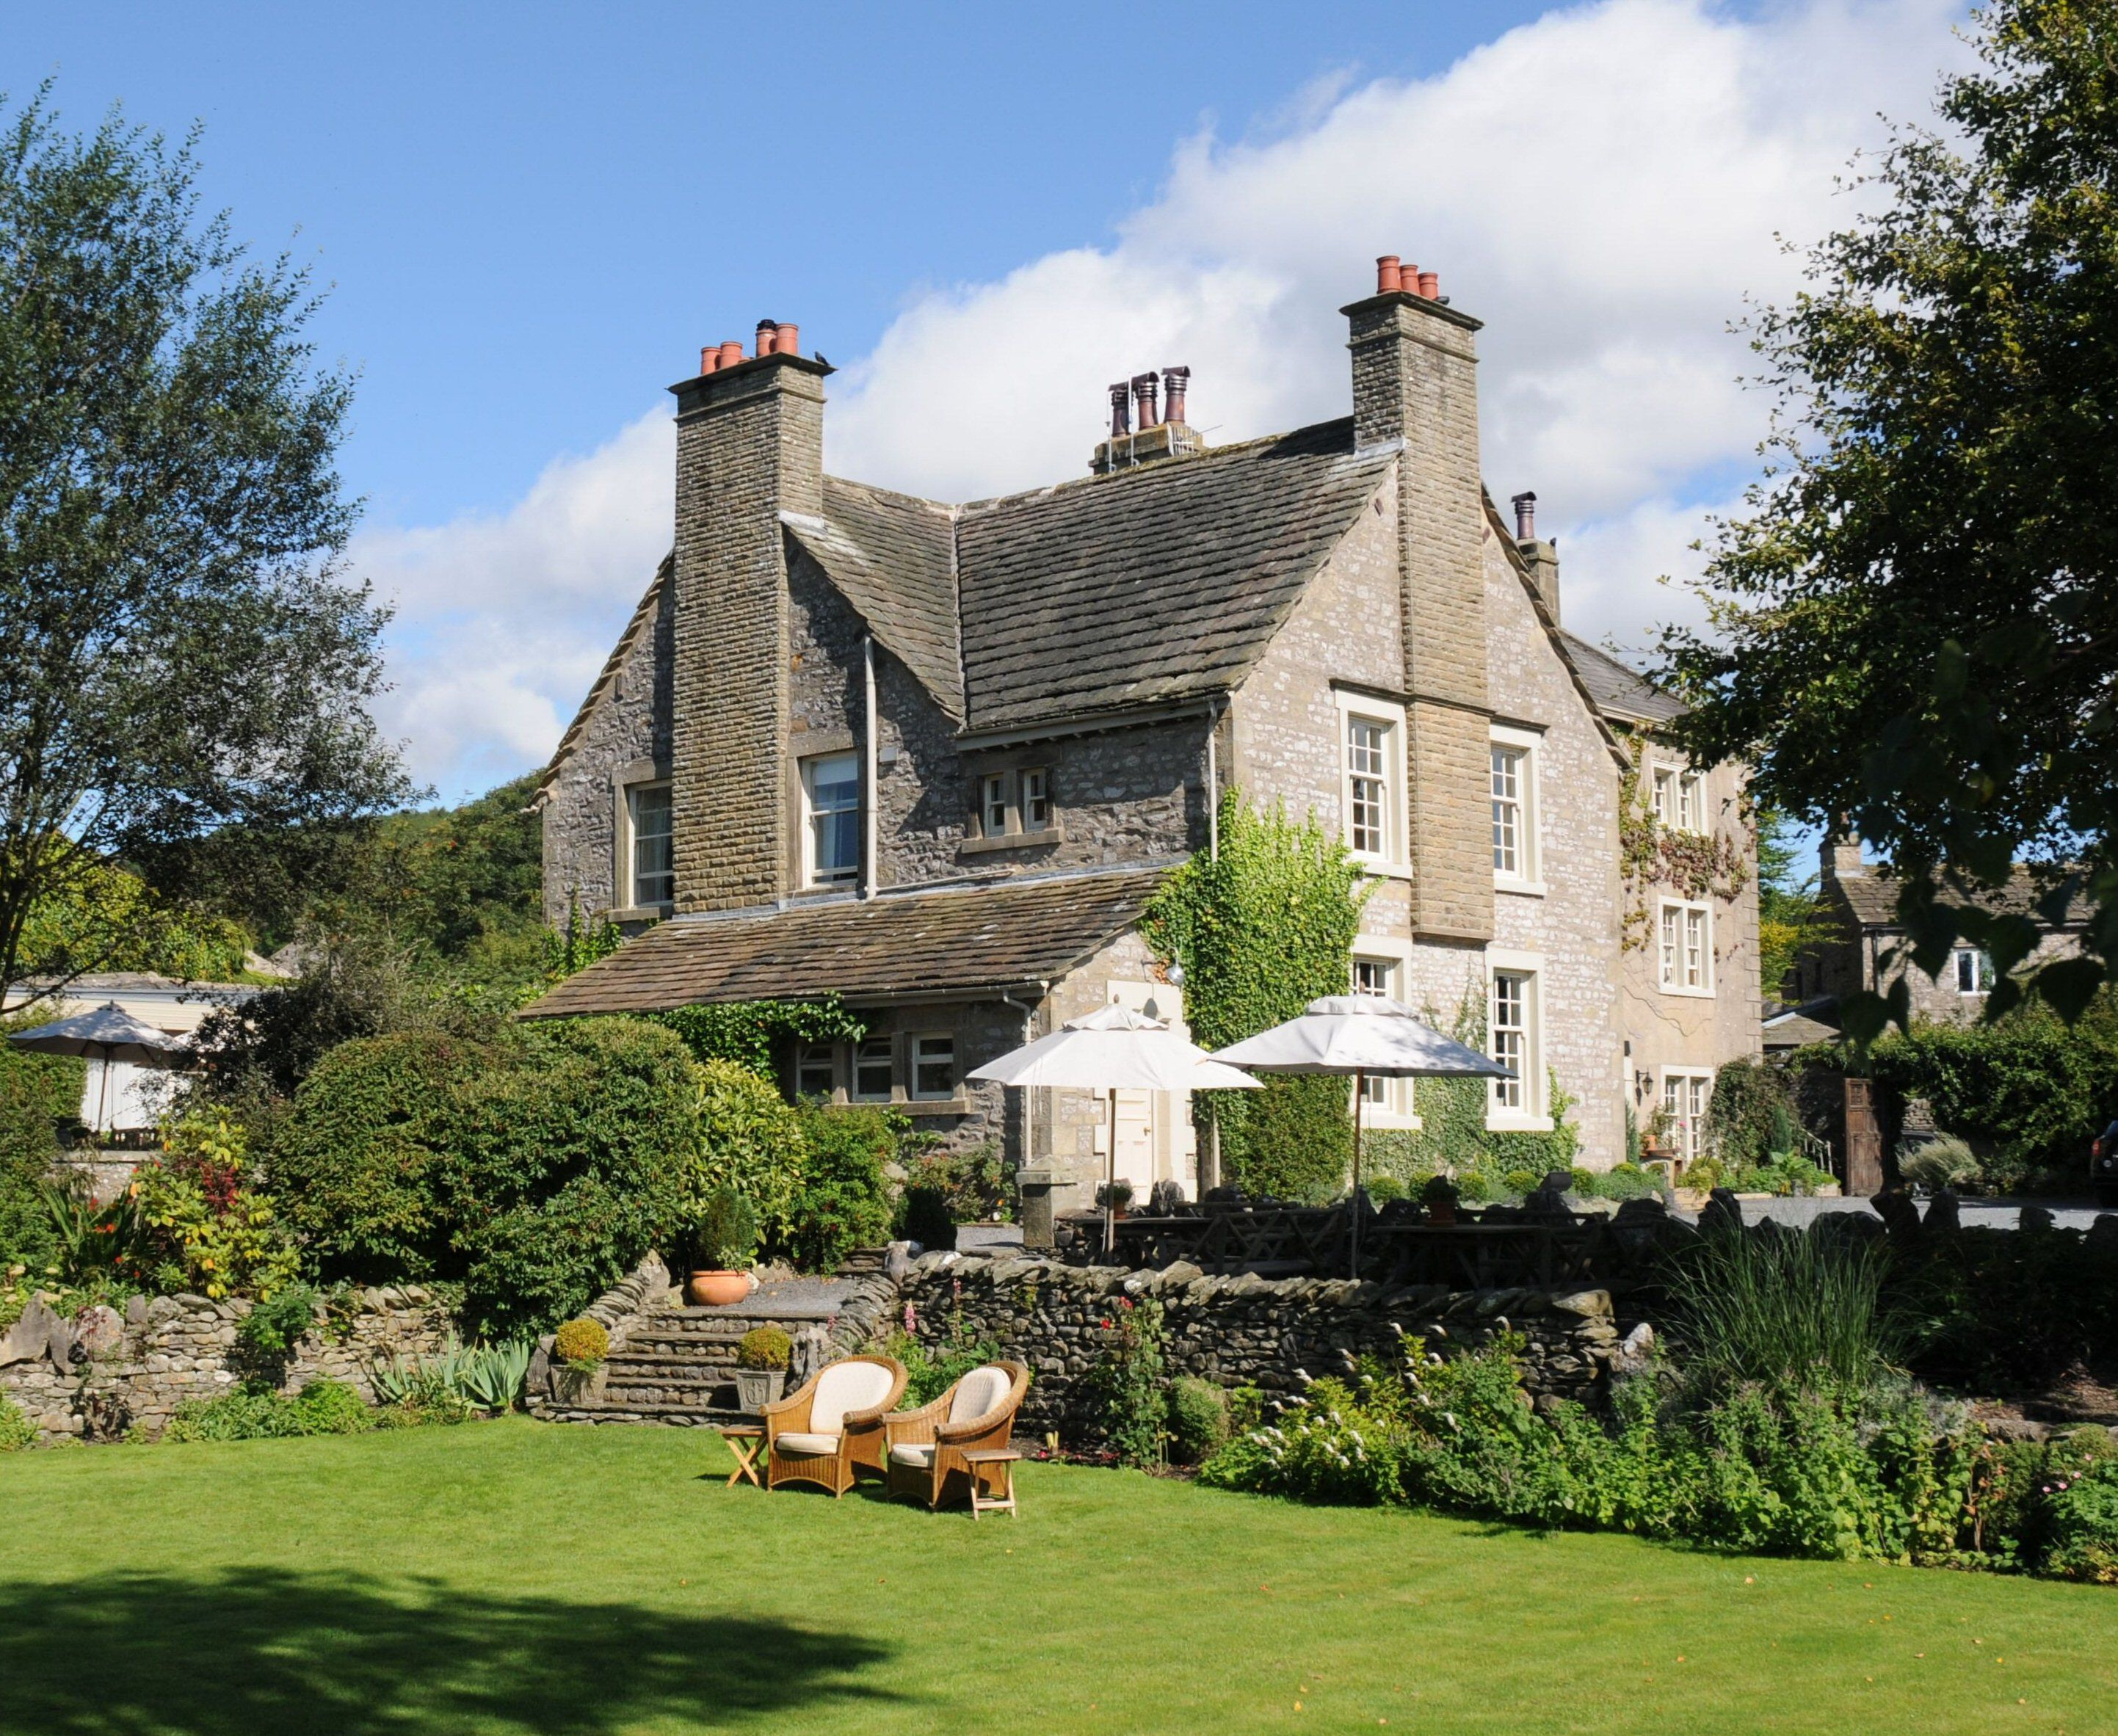 wedding reception venues north yorkshire%0A Traddock Hotel  a little slice of English country elegance near the  Yorkshire Dales  A